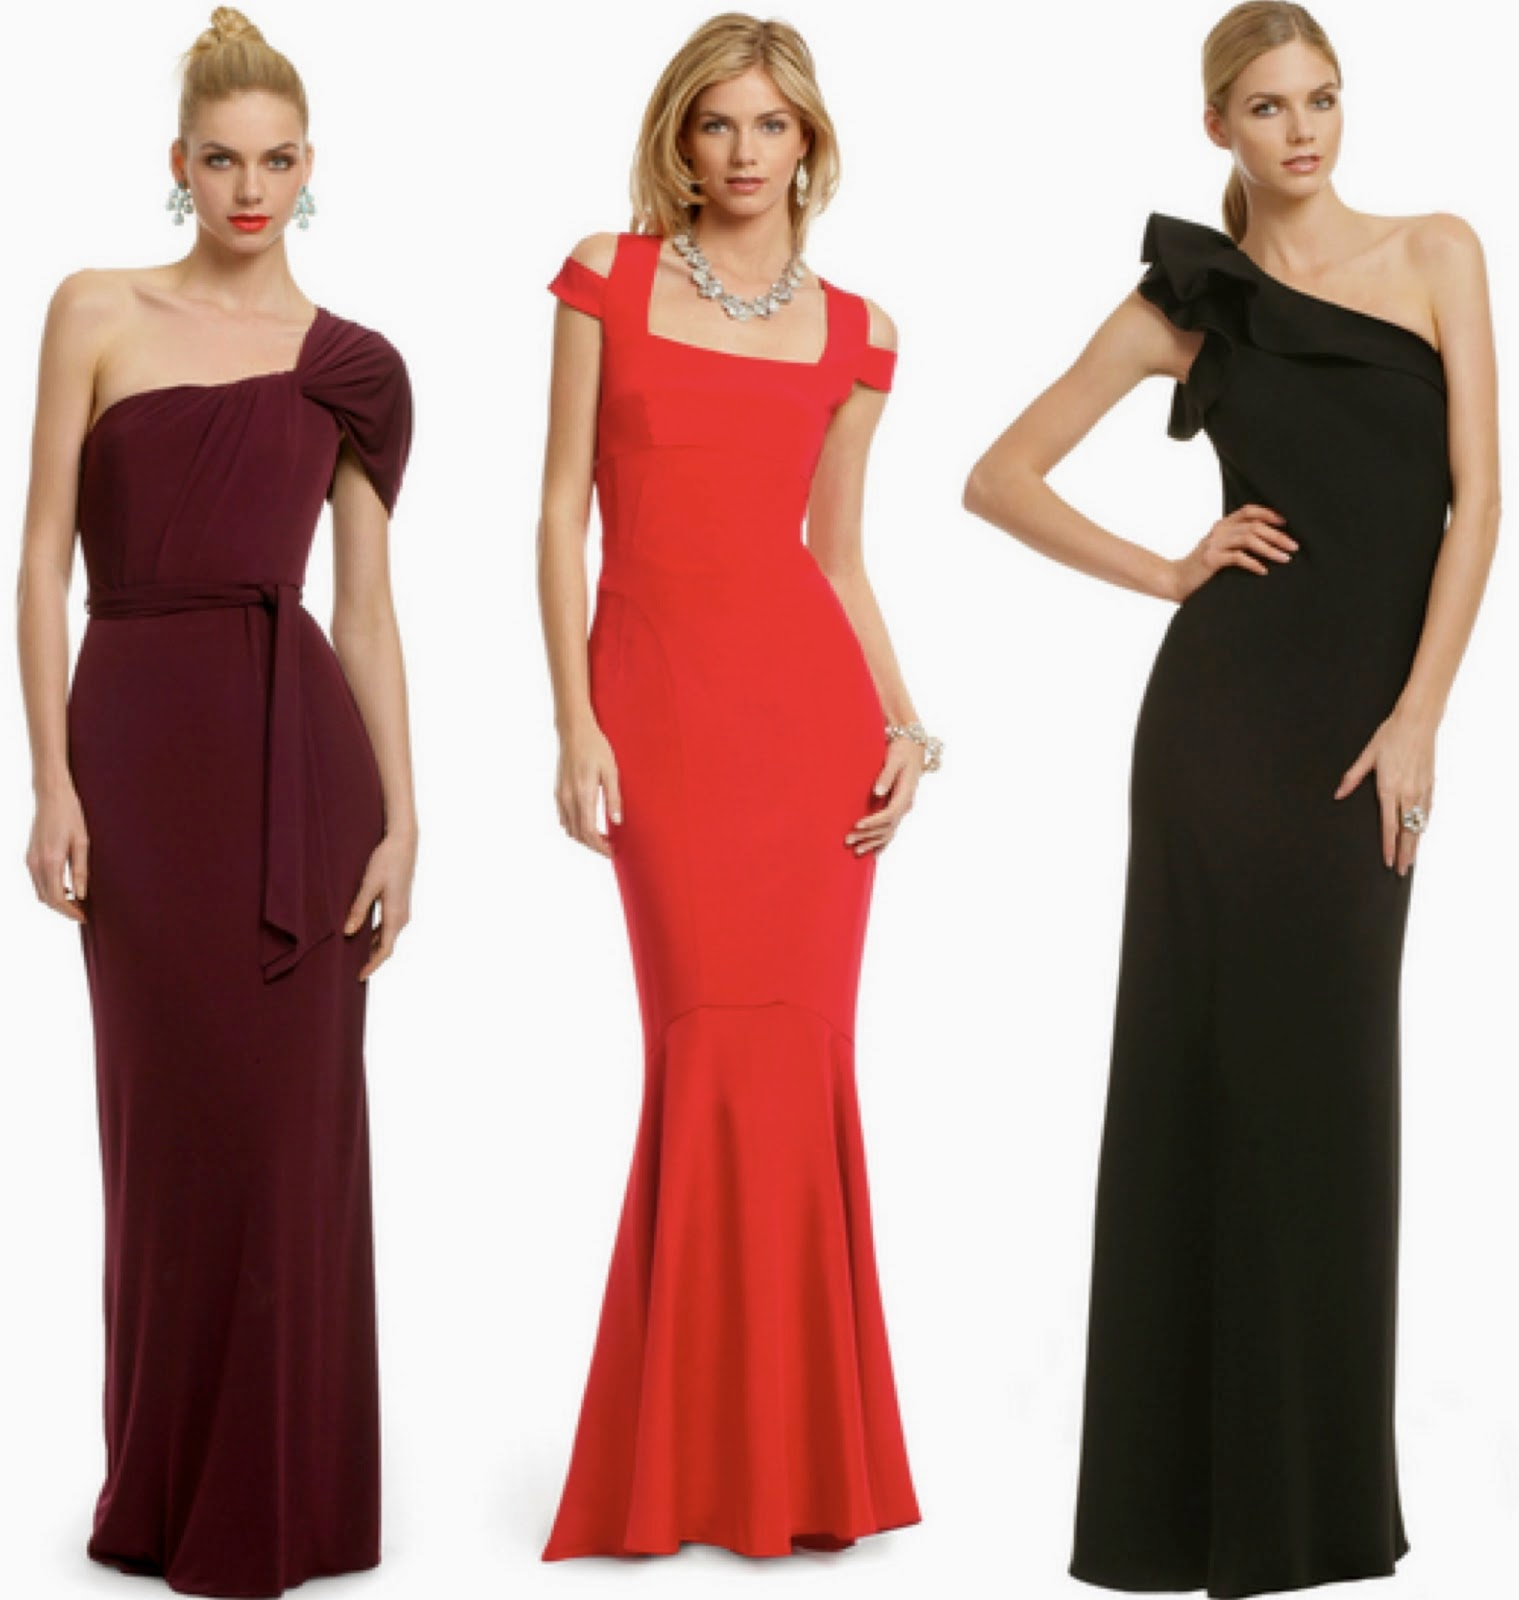 Black Tie Dress Code For Women Cocktail Dresses 2016